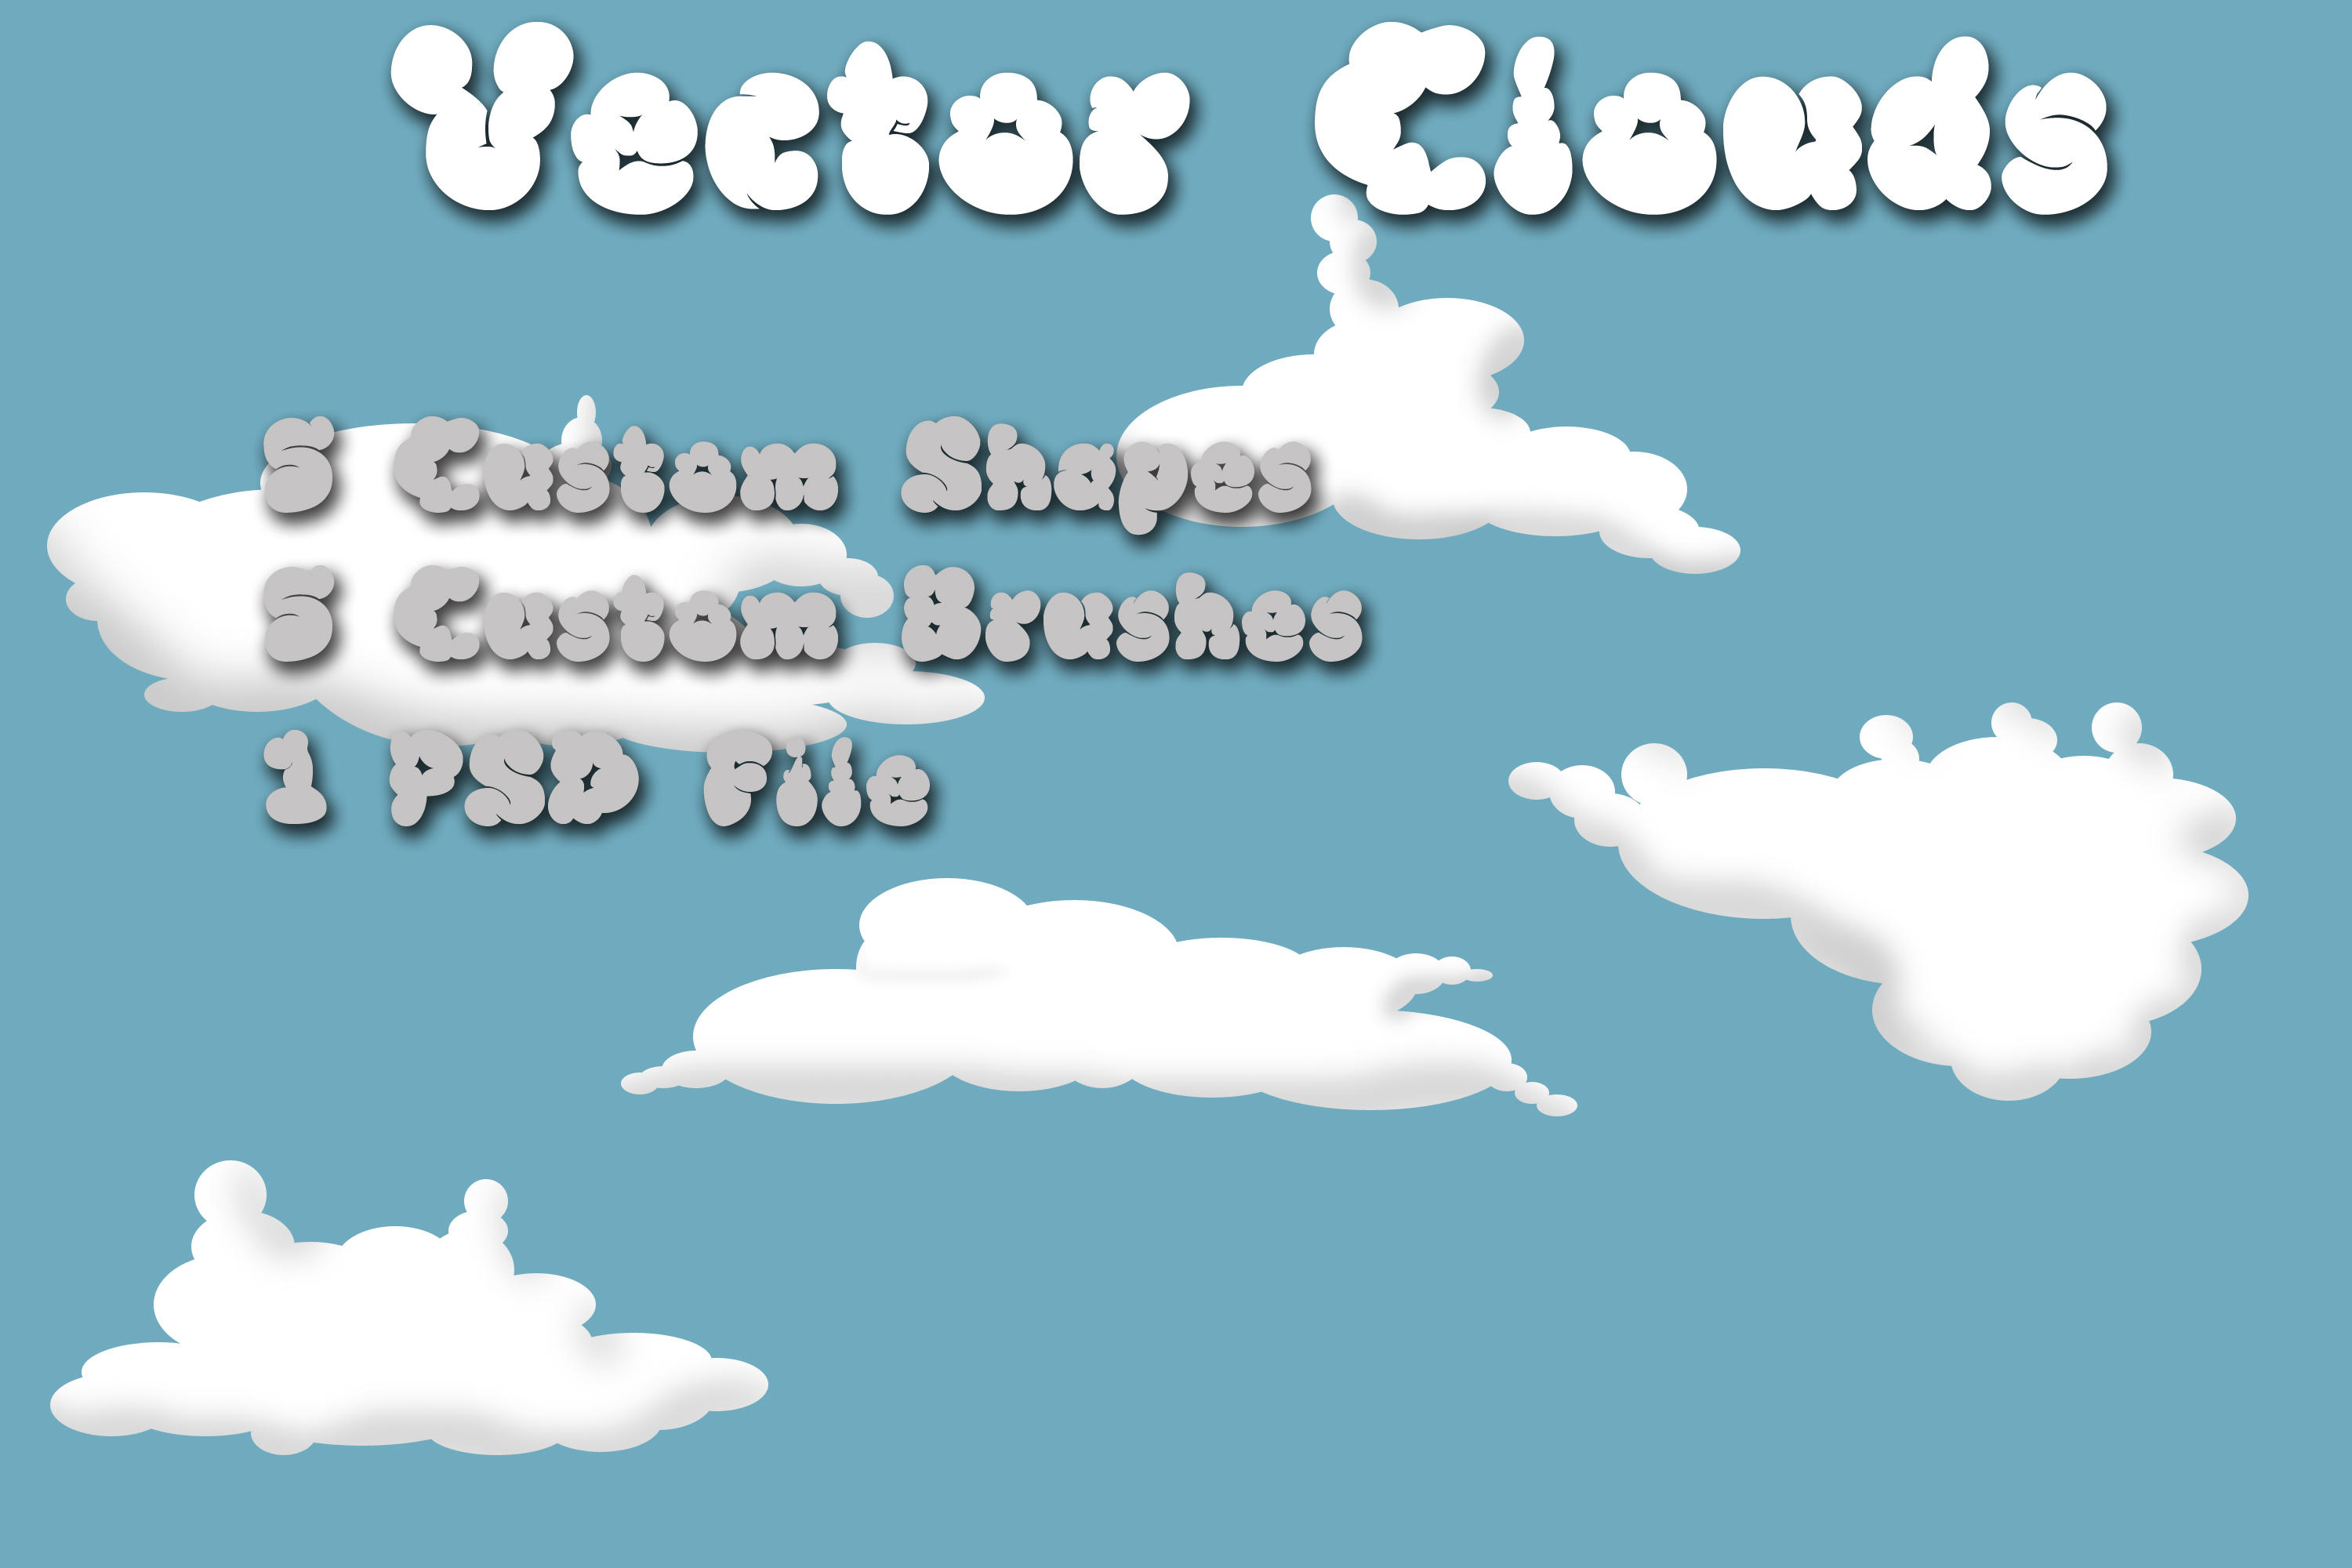 Clouds brushes and shapes by rev-jesse-c-stock